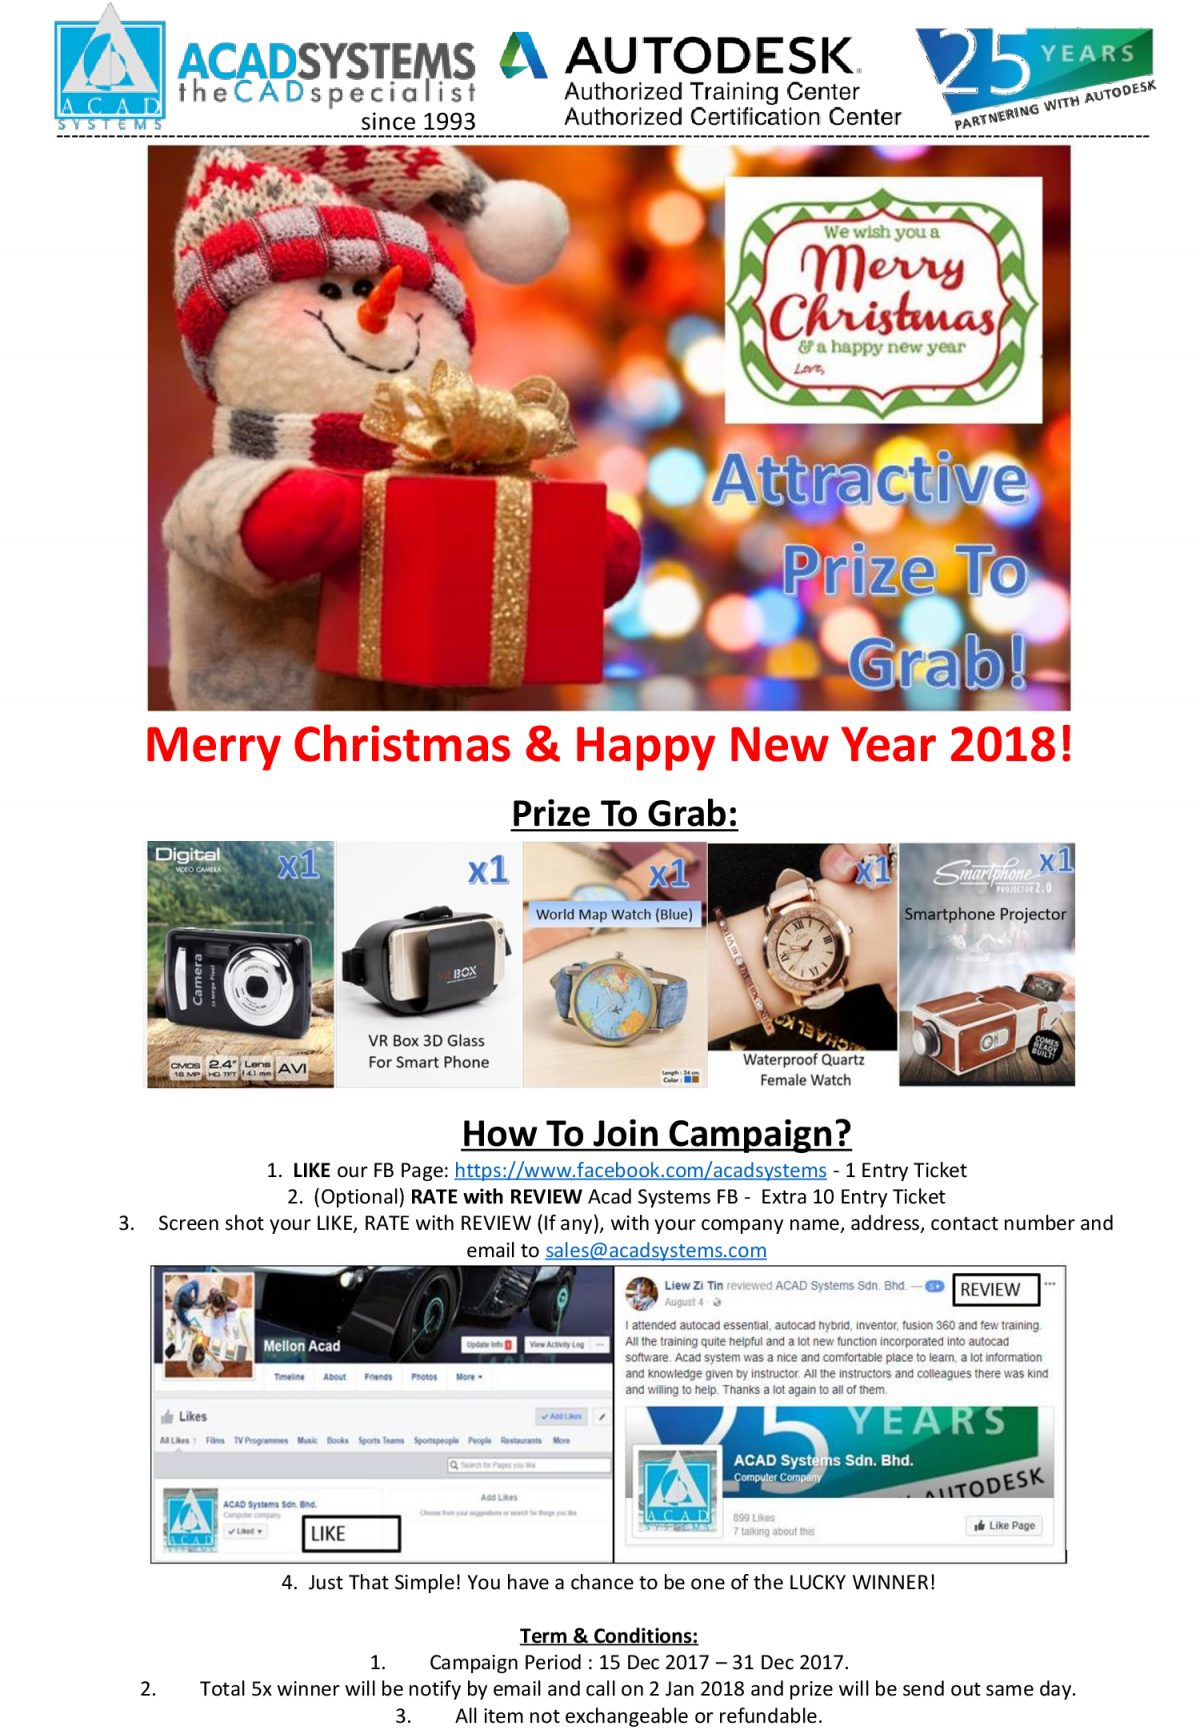 Acad-Campaign-For-Christmas-_-New-Year-2018